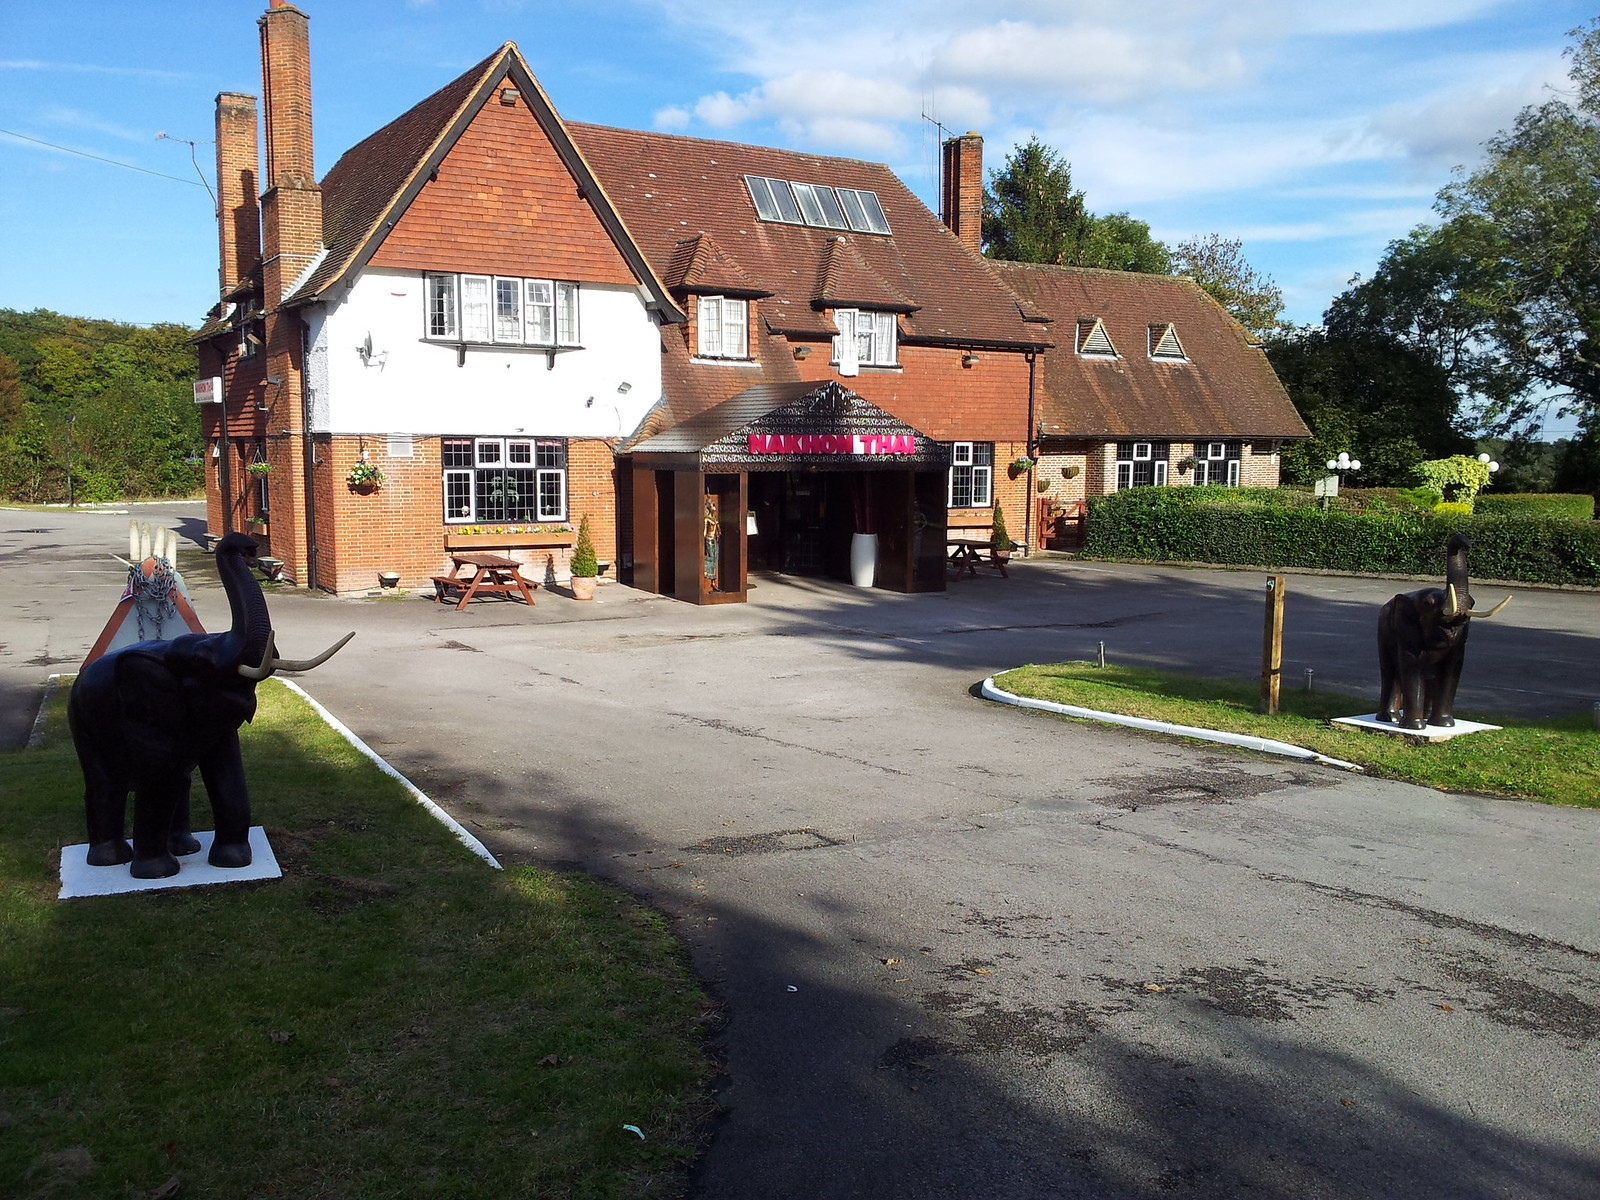 Indian Restaurant Henley to Pangbourne